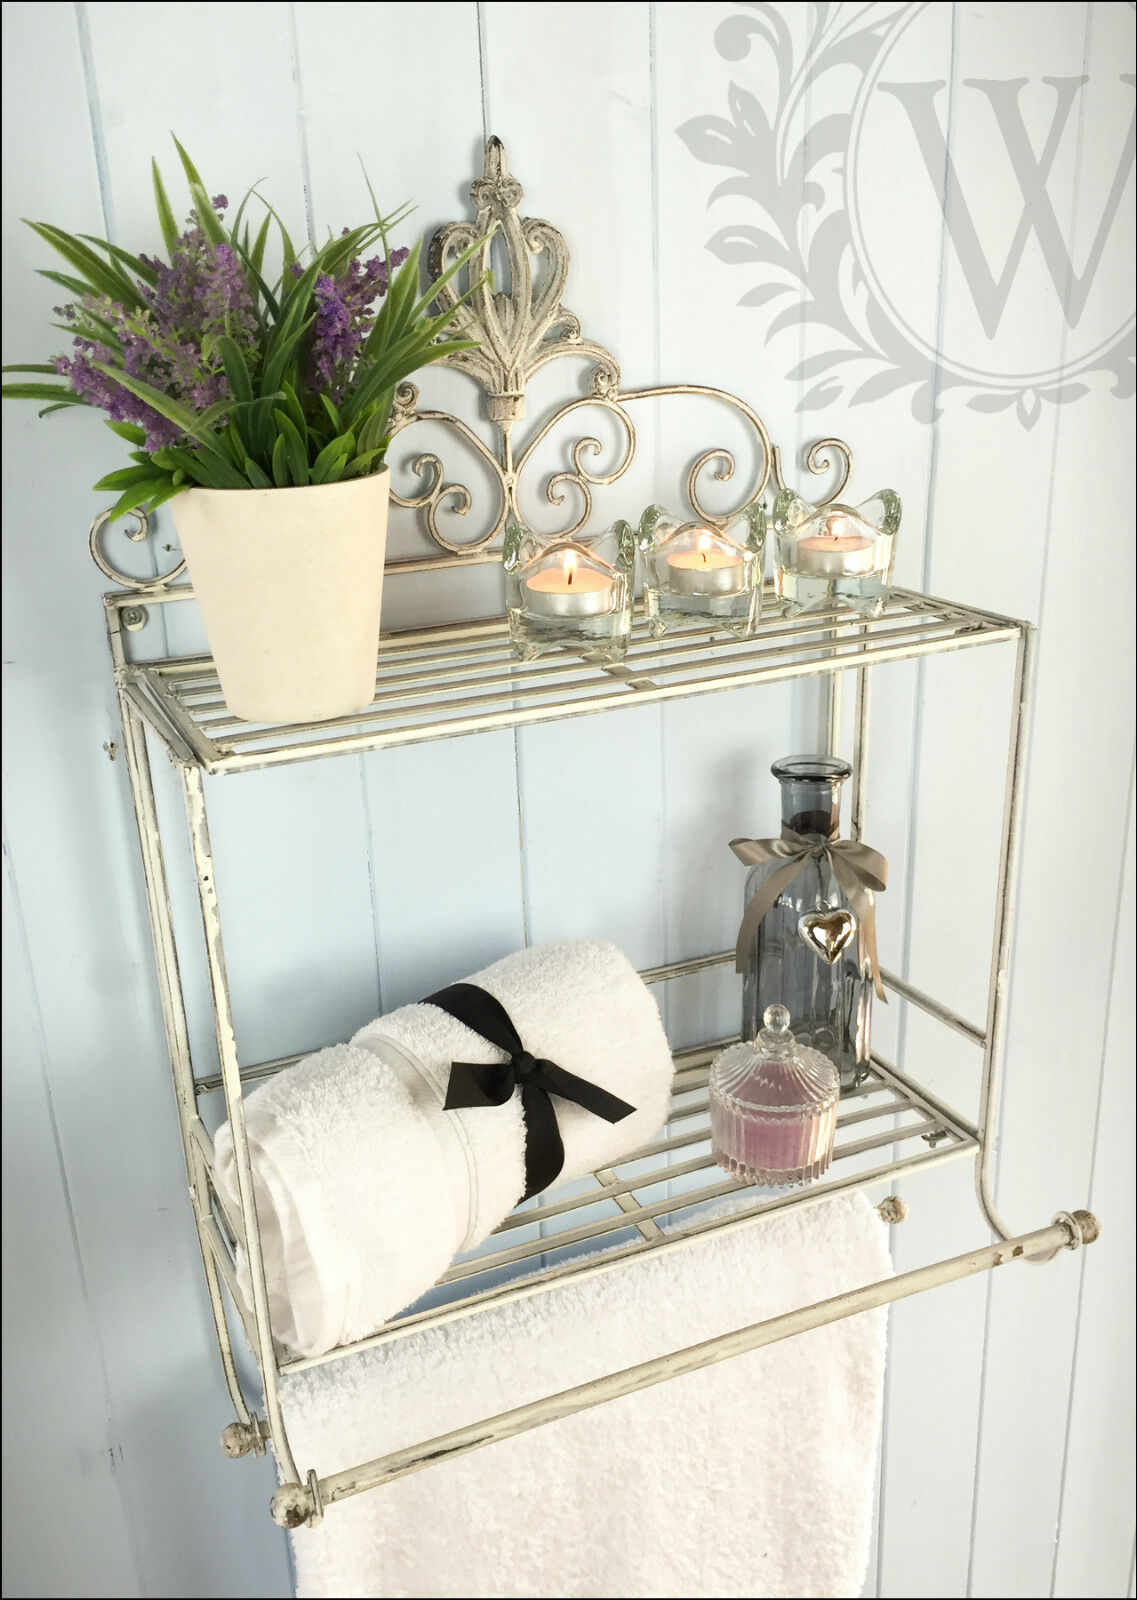 Shabby Chic Metal Scroll Shelf Hanging Storage Towel Rail